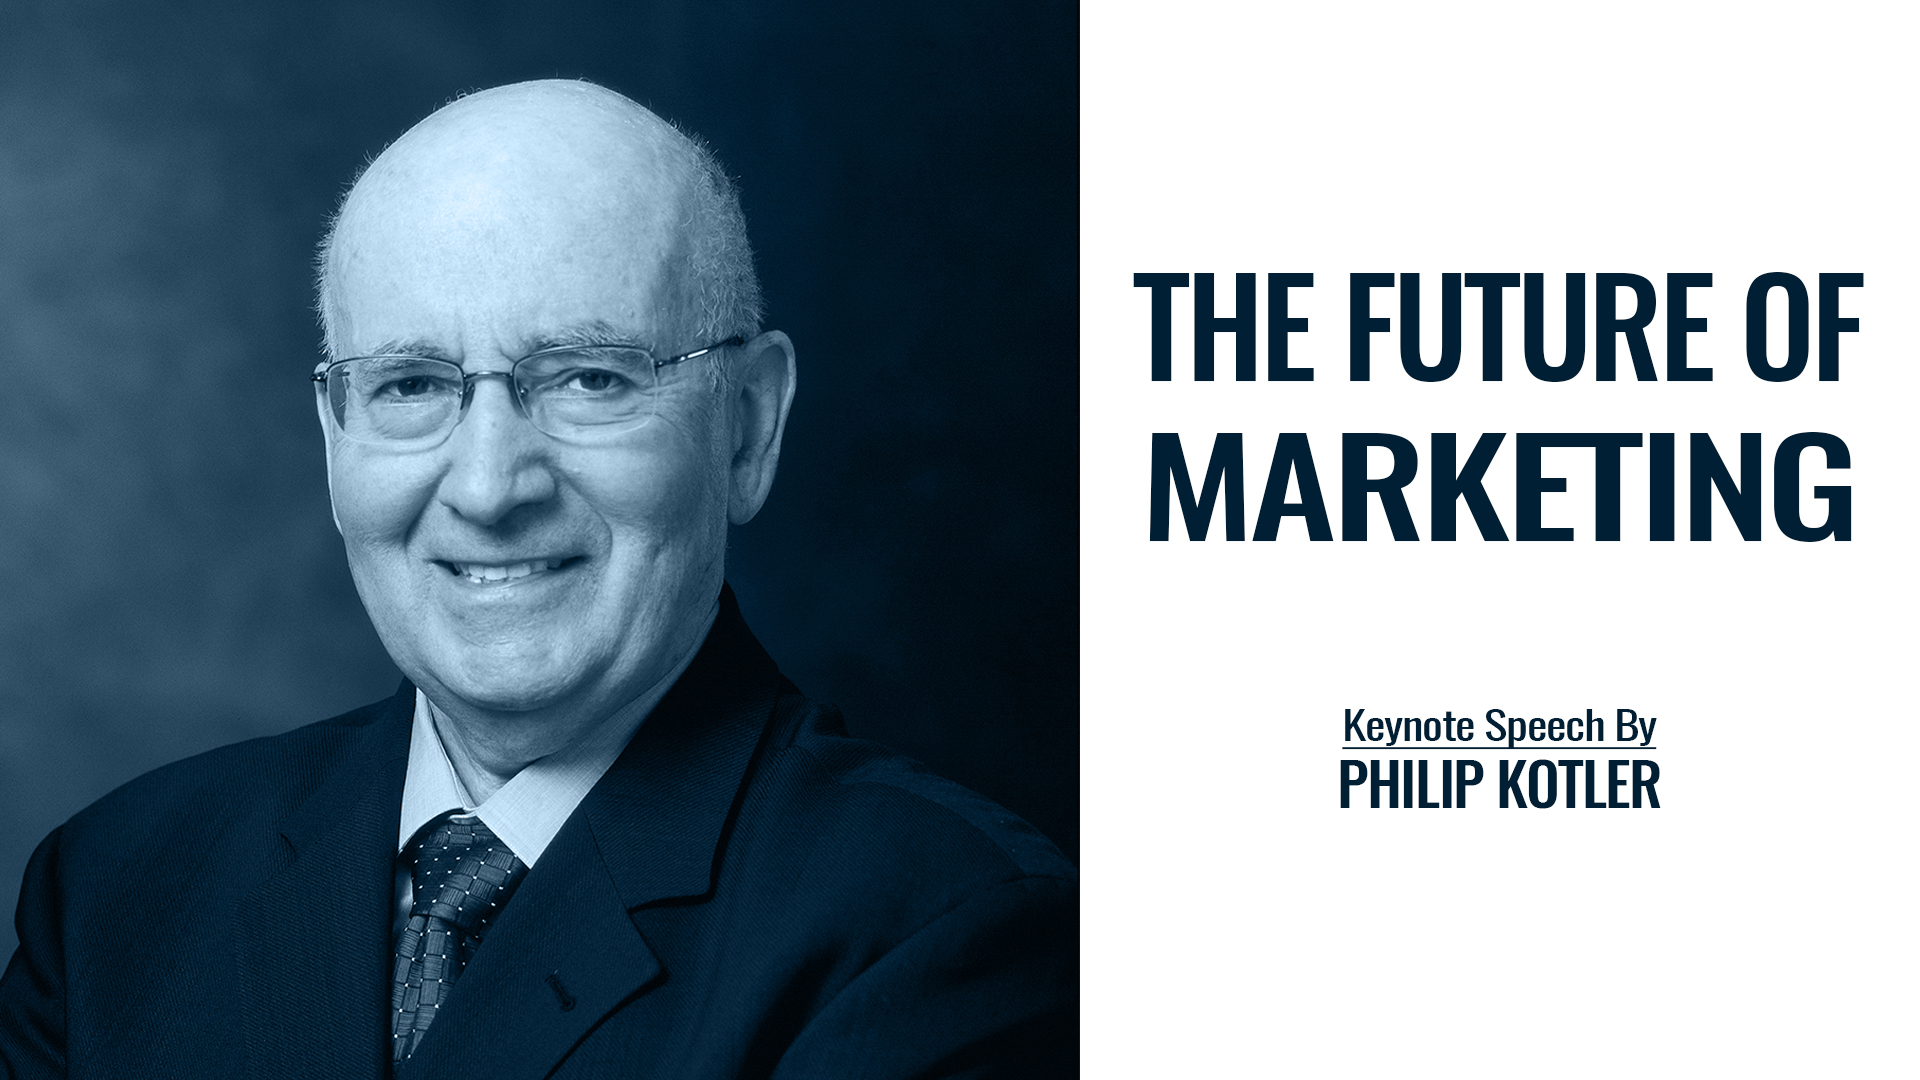 The Future of Marketing   Keynote Speech By Philip Kotler